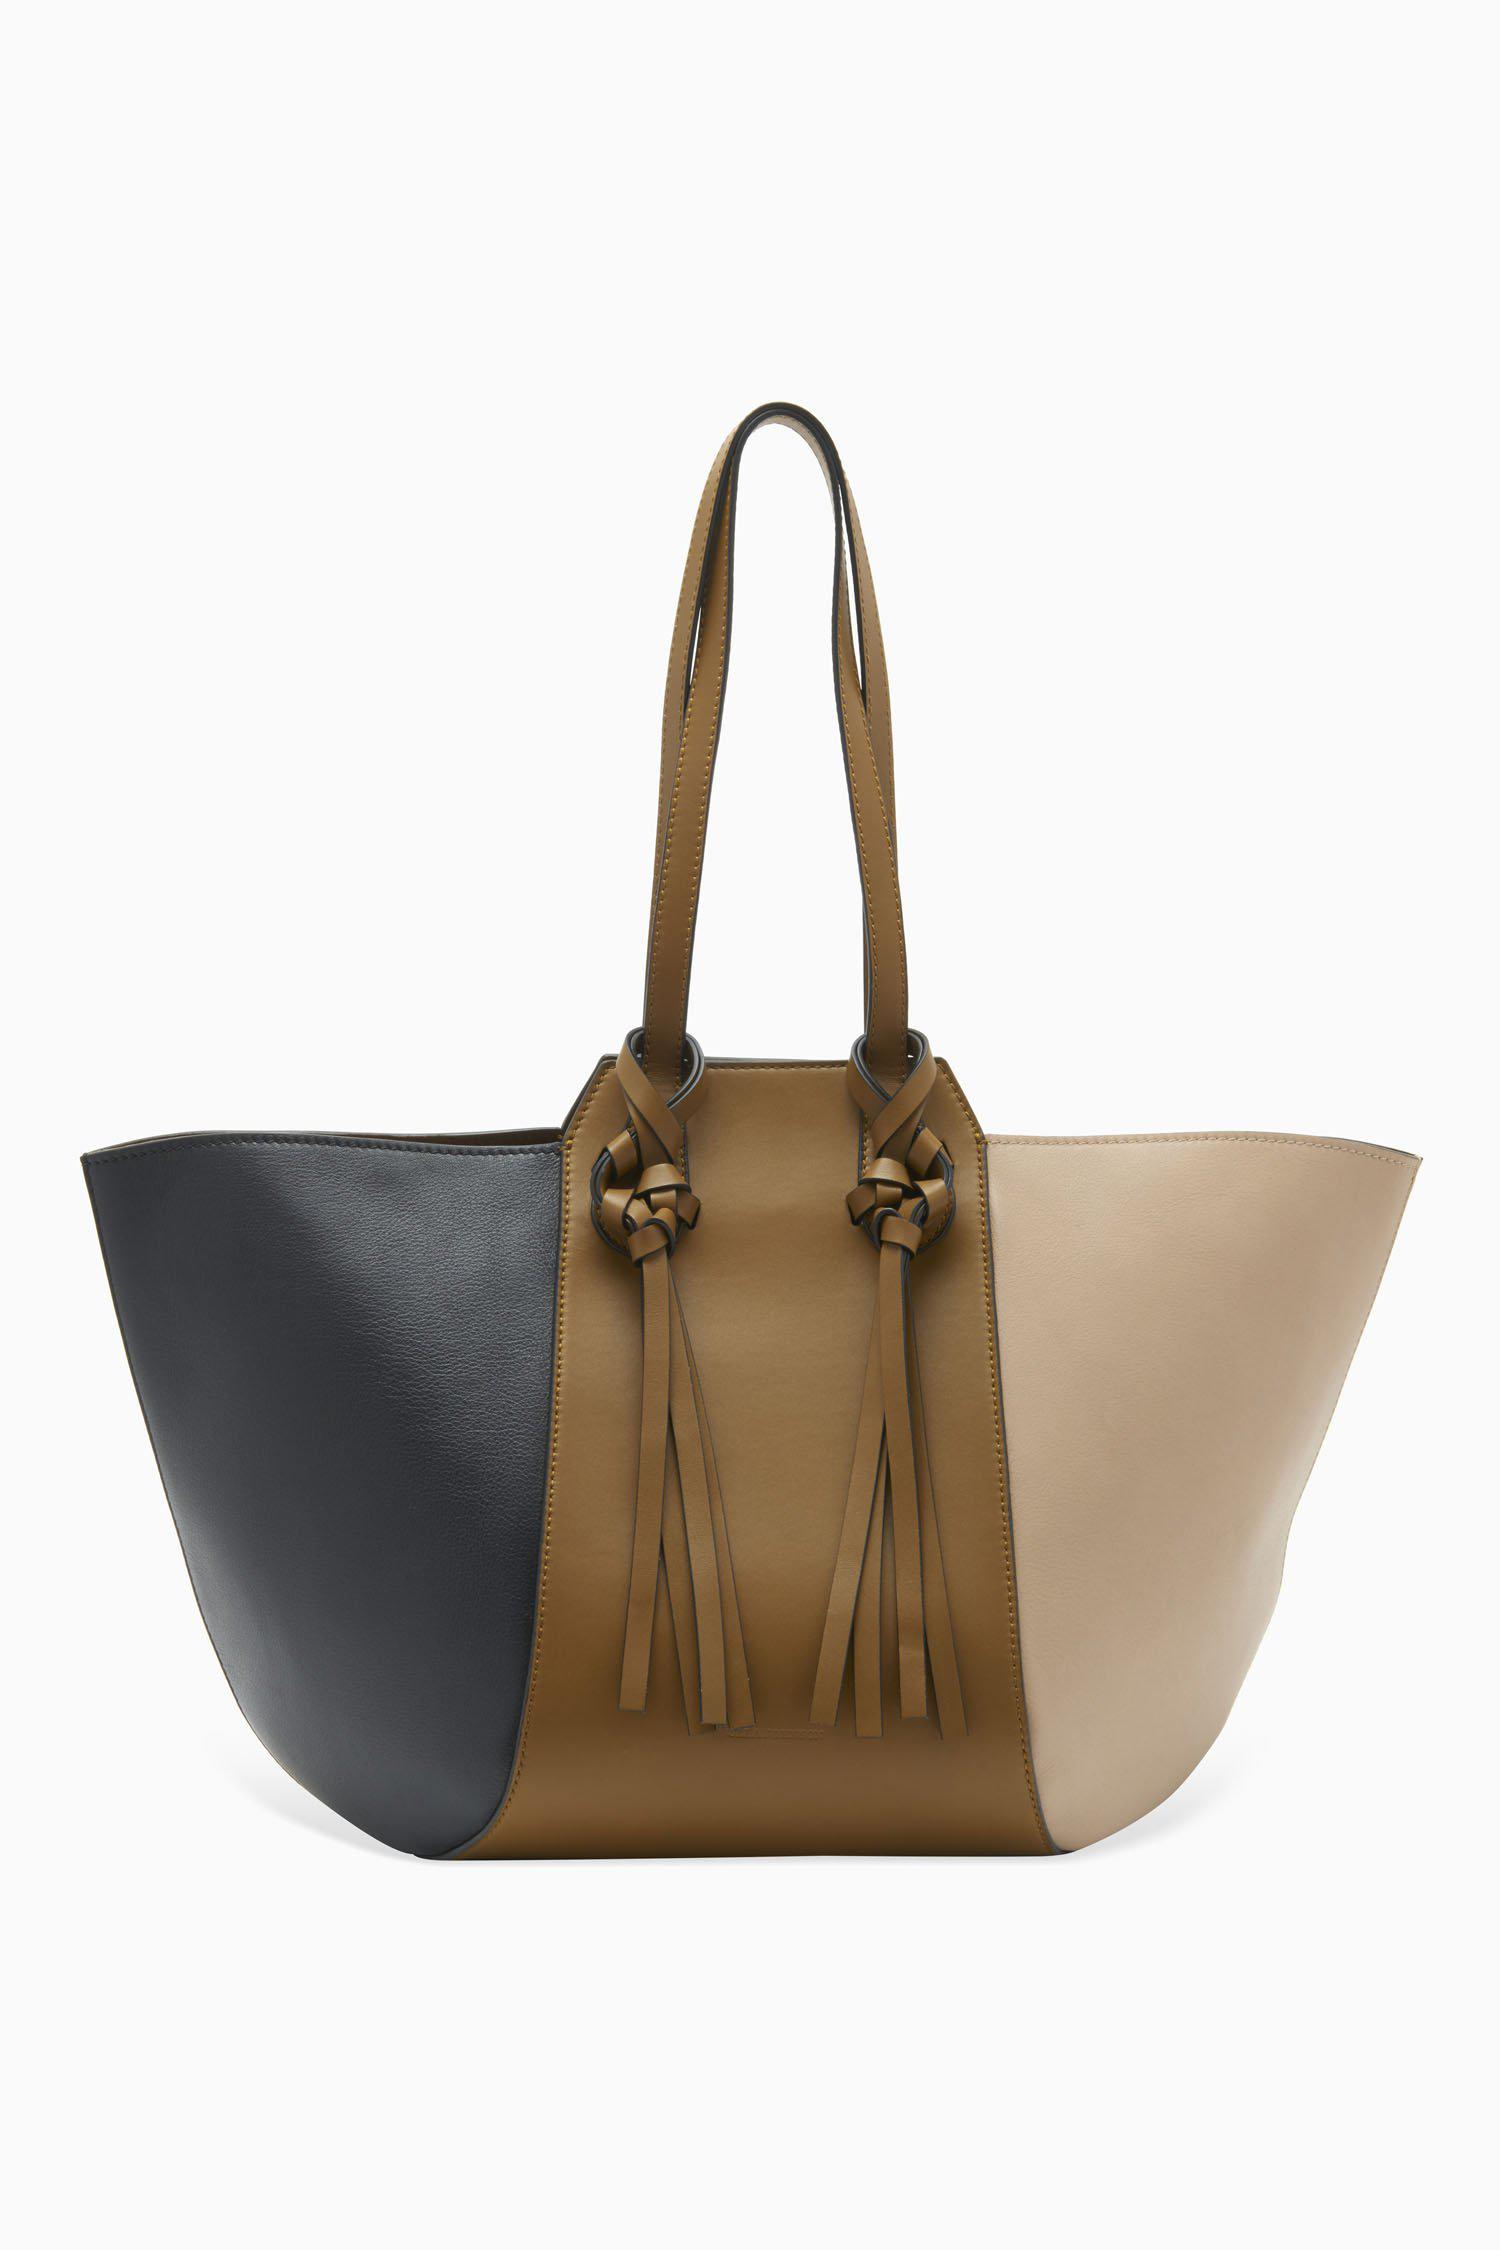 Imogen Large Carryall Tote